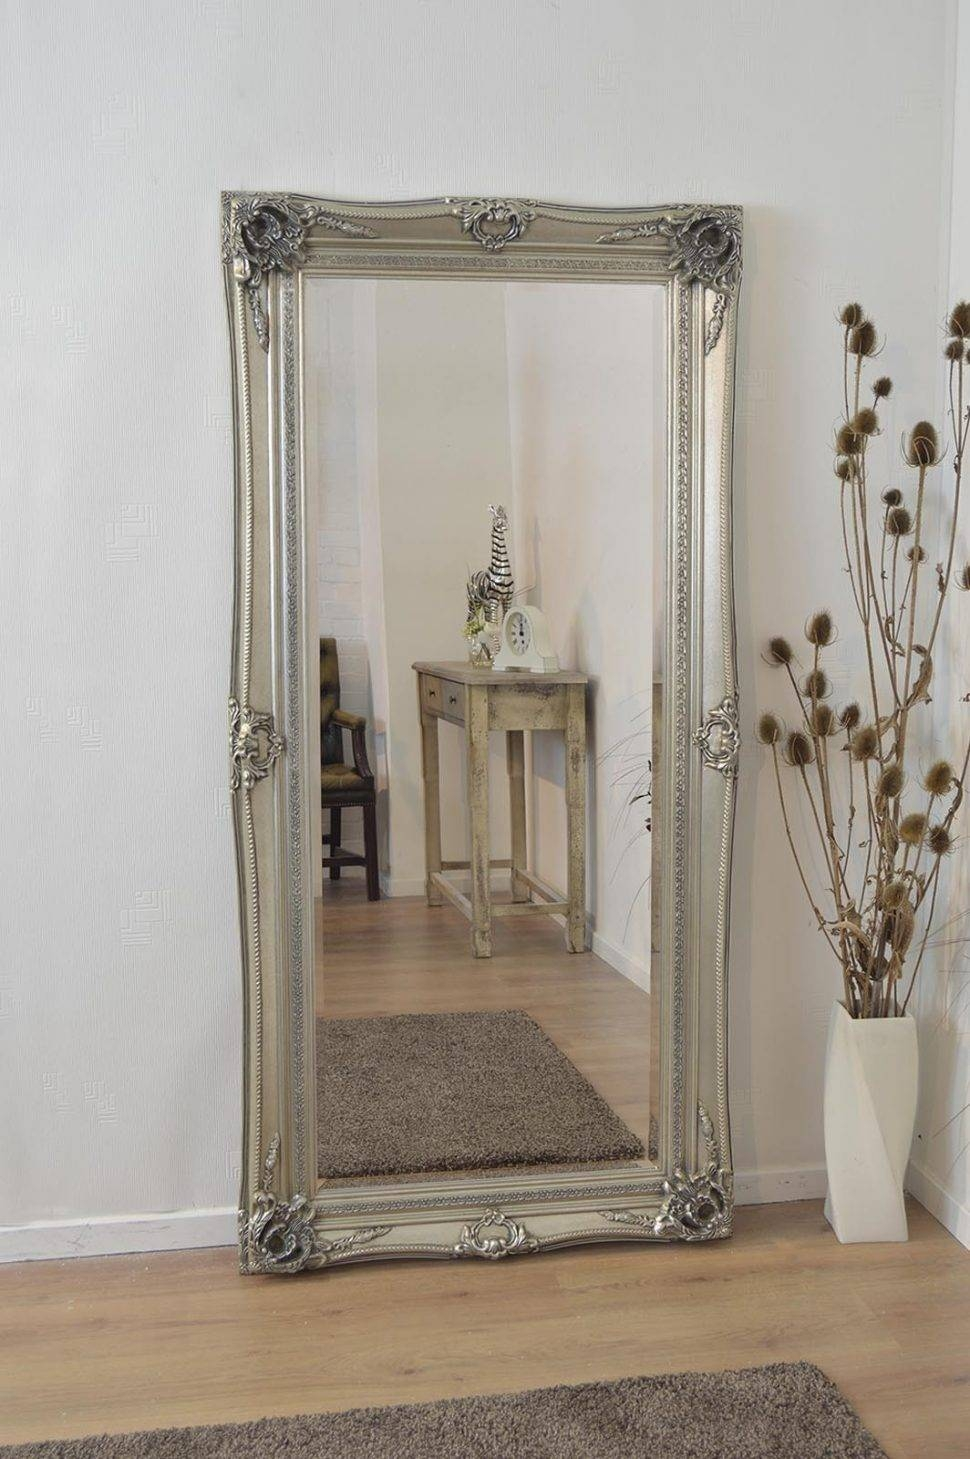 Shabby Chic Floor Mirror 102 Breathtaking Decor Plus Welcoming in Shabby Chic Floor Mirrors (Image 10 of 25)